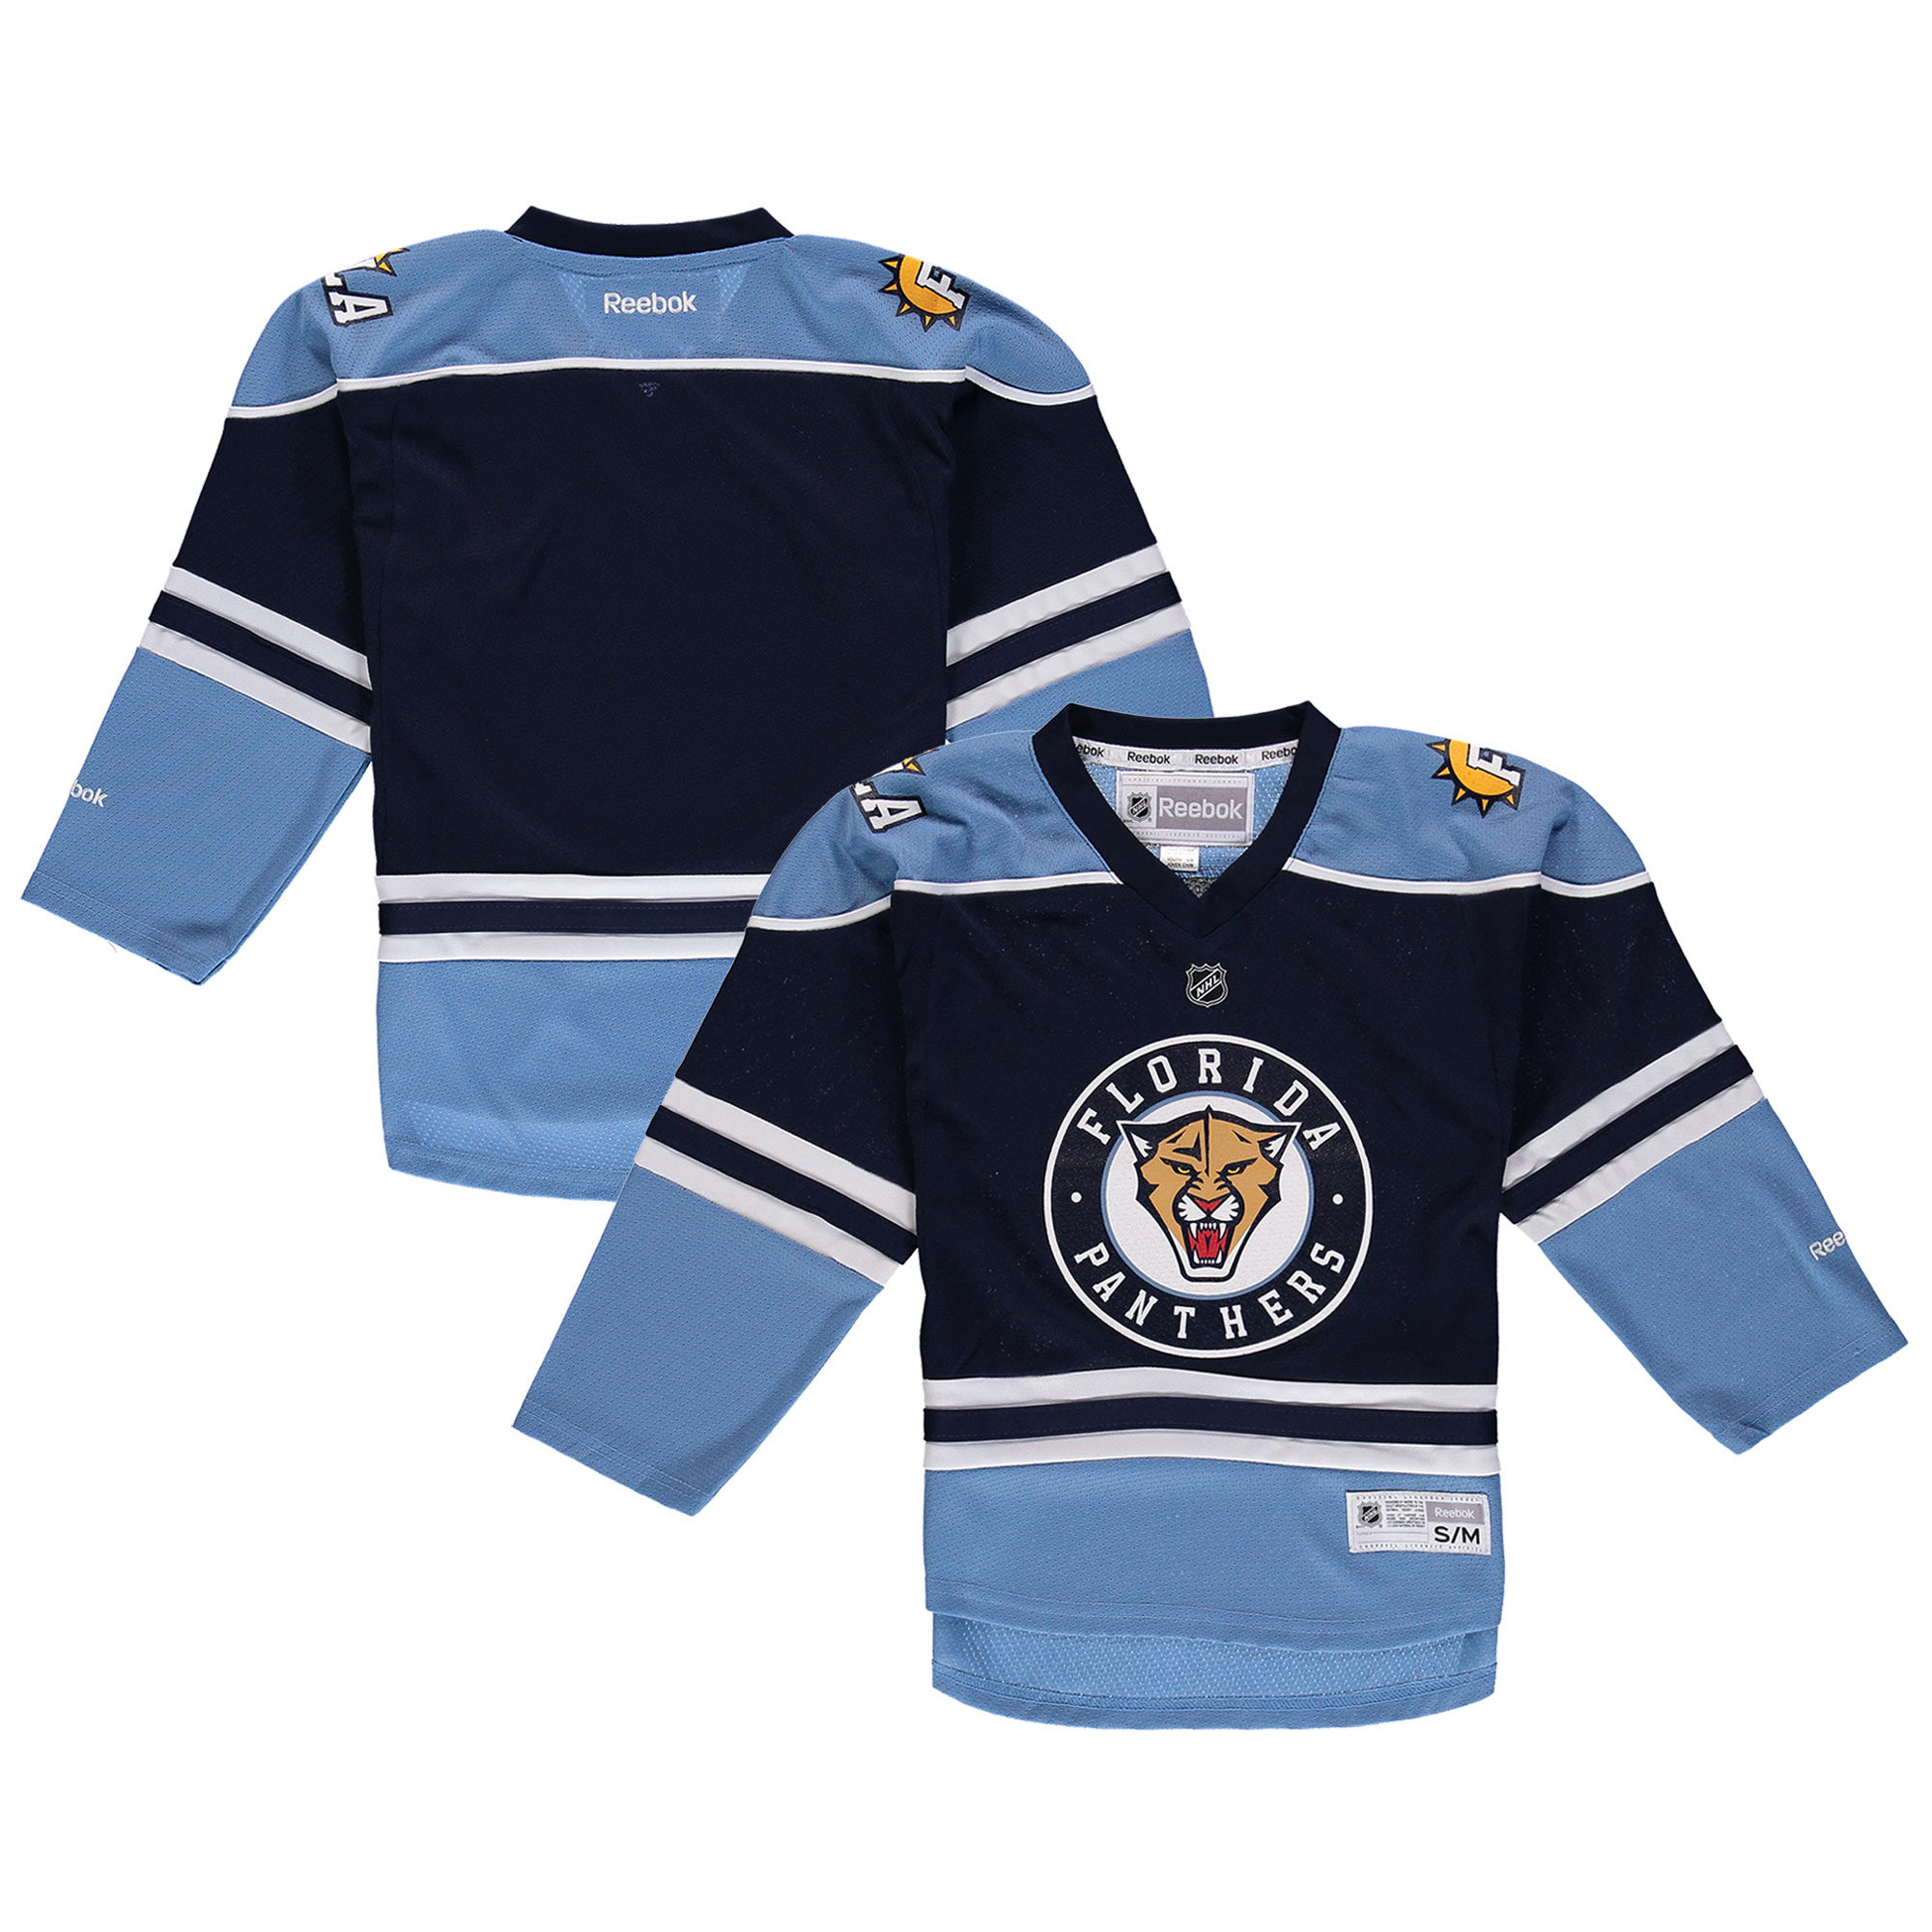 Florida Panthers Reebok Blank Replica Jersey - Navy